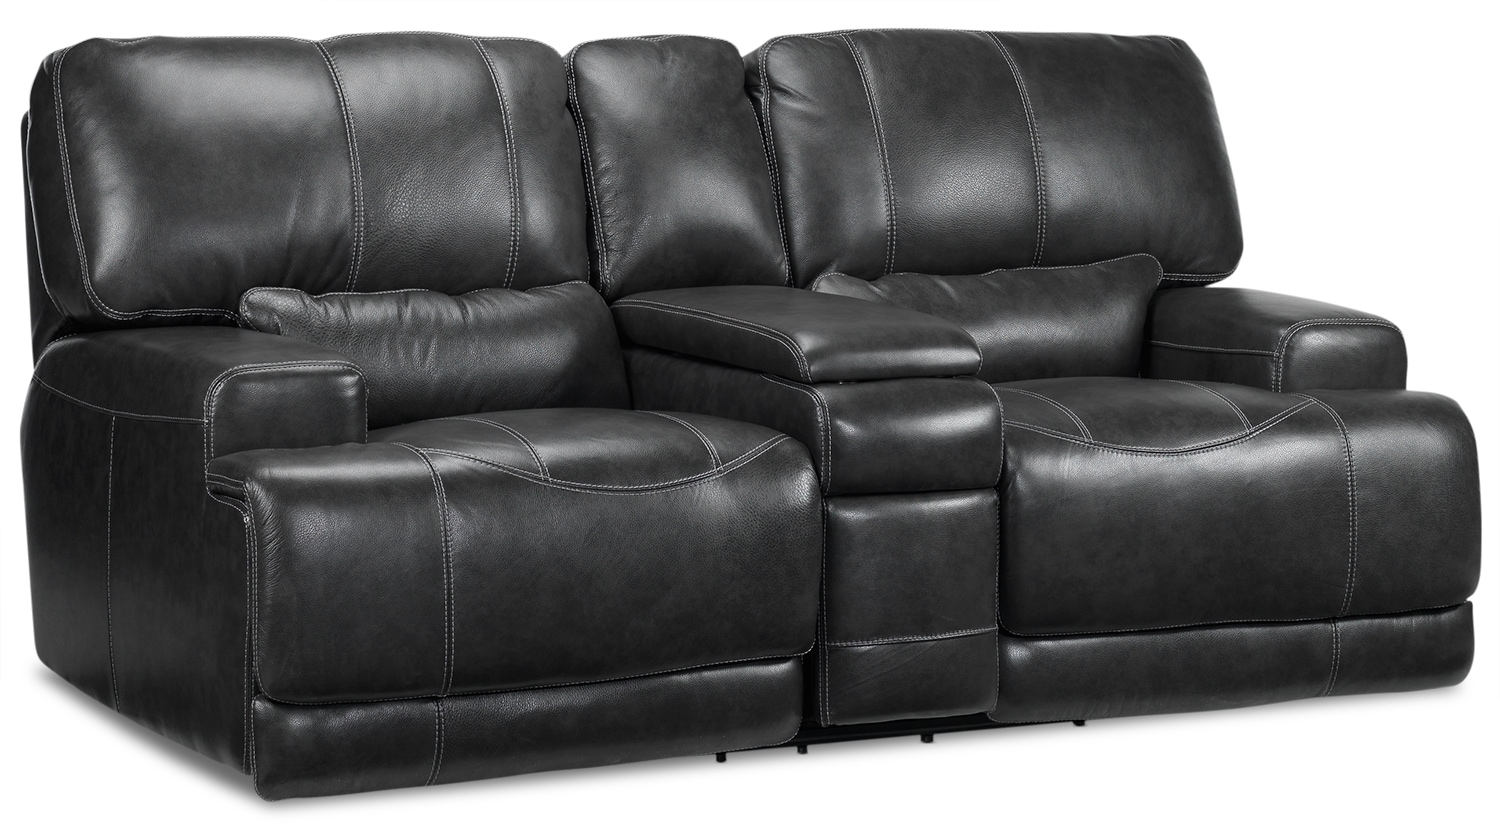 Dearborn Power Reclining Sofa Charcoal Leon 39 S: power reclining sofas and loveseats